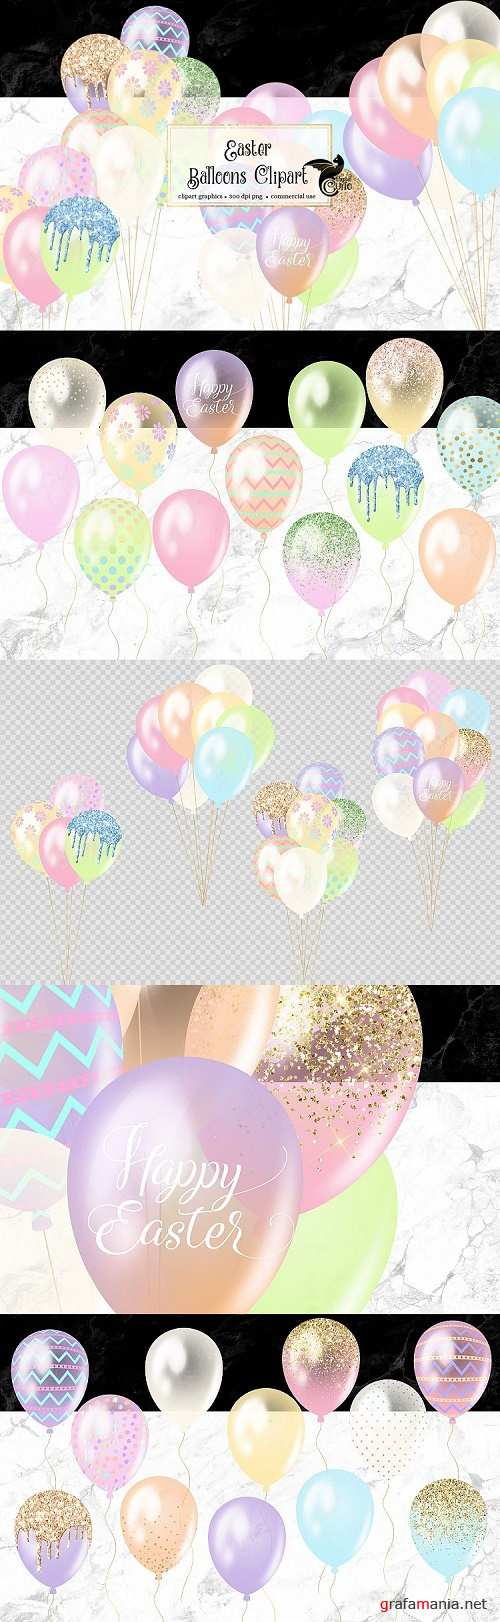 Easter Balloons Clipart  - 476440